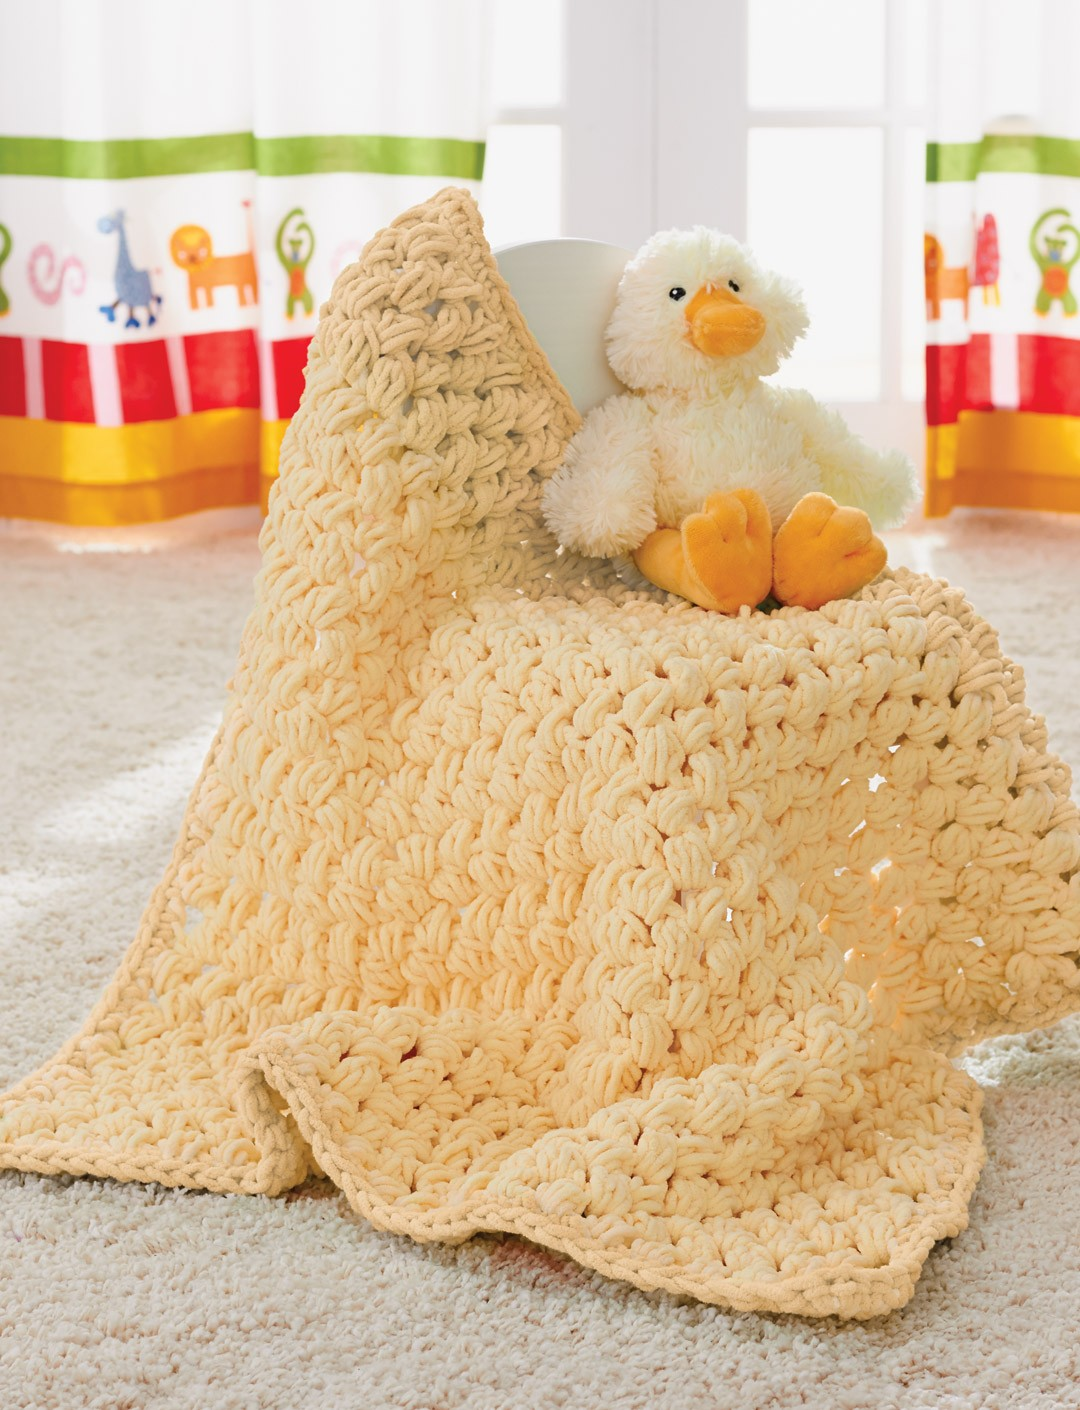 Easy Crochet Baby Blanket Patterns For Beginners : Bernat Puffy Baby Blanket, Crochet Pattern Yarnspirations